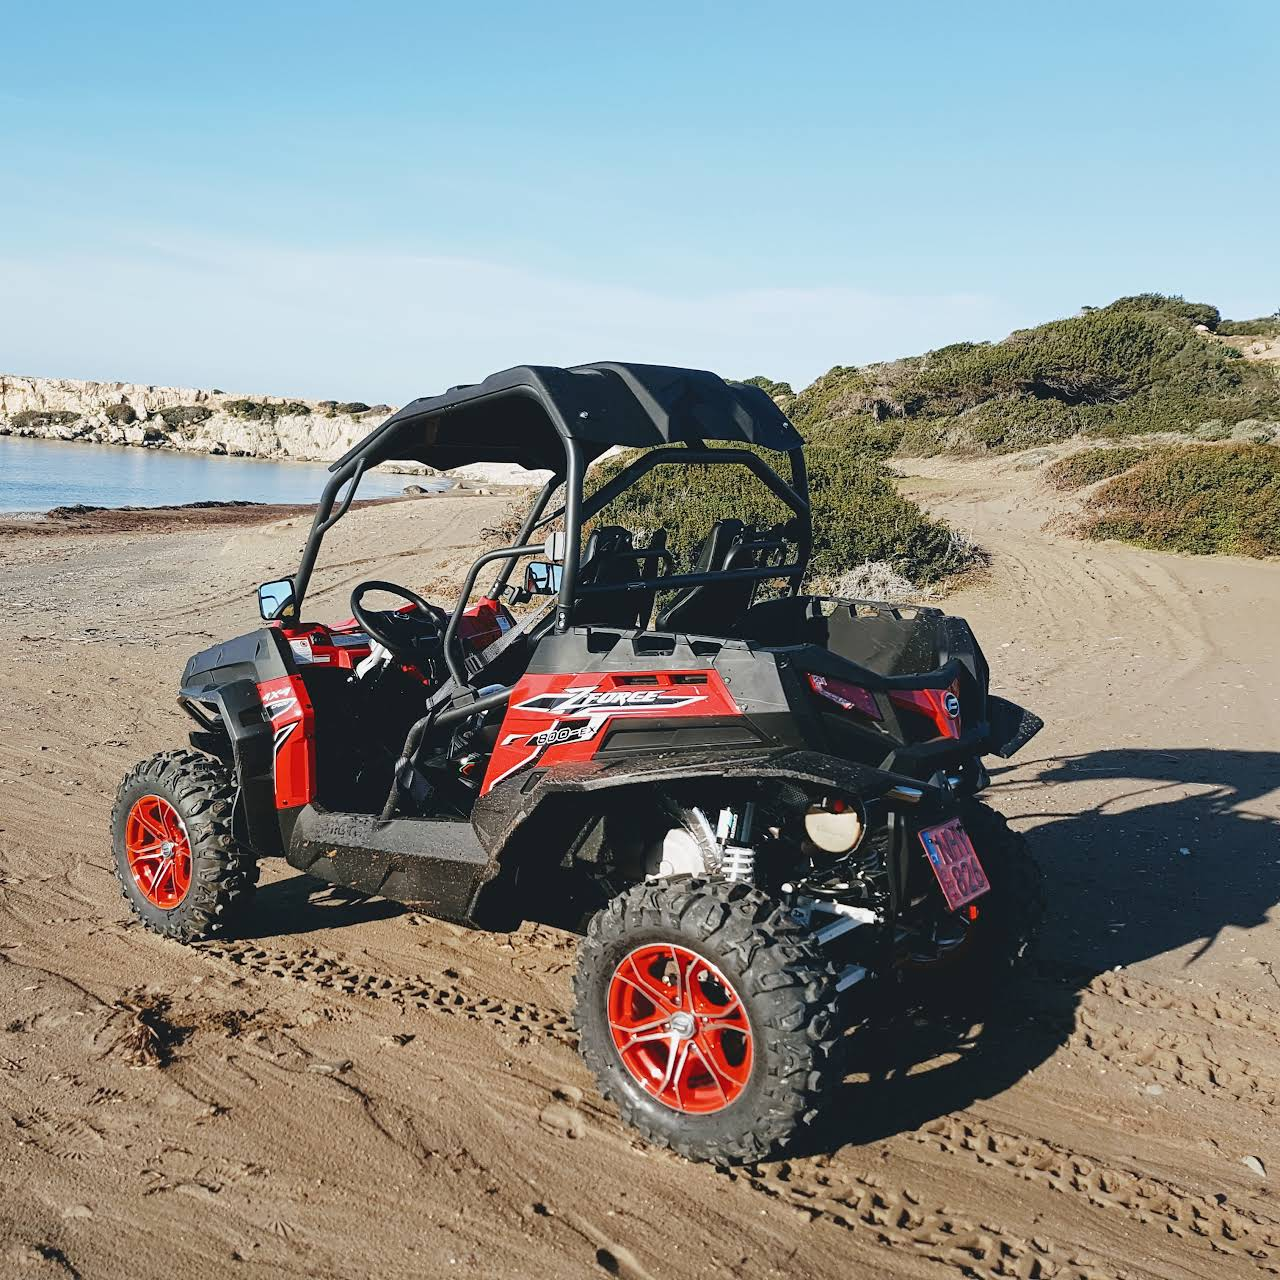 Ippos Brothers Motorcycle Rentals - Quad bikes, scooters ,buggys and